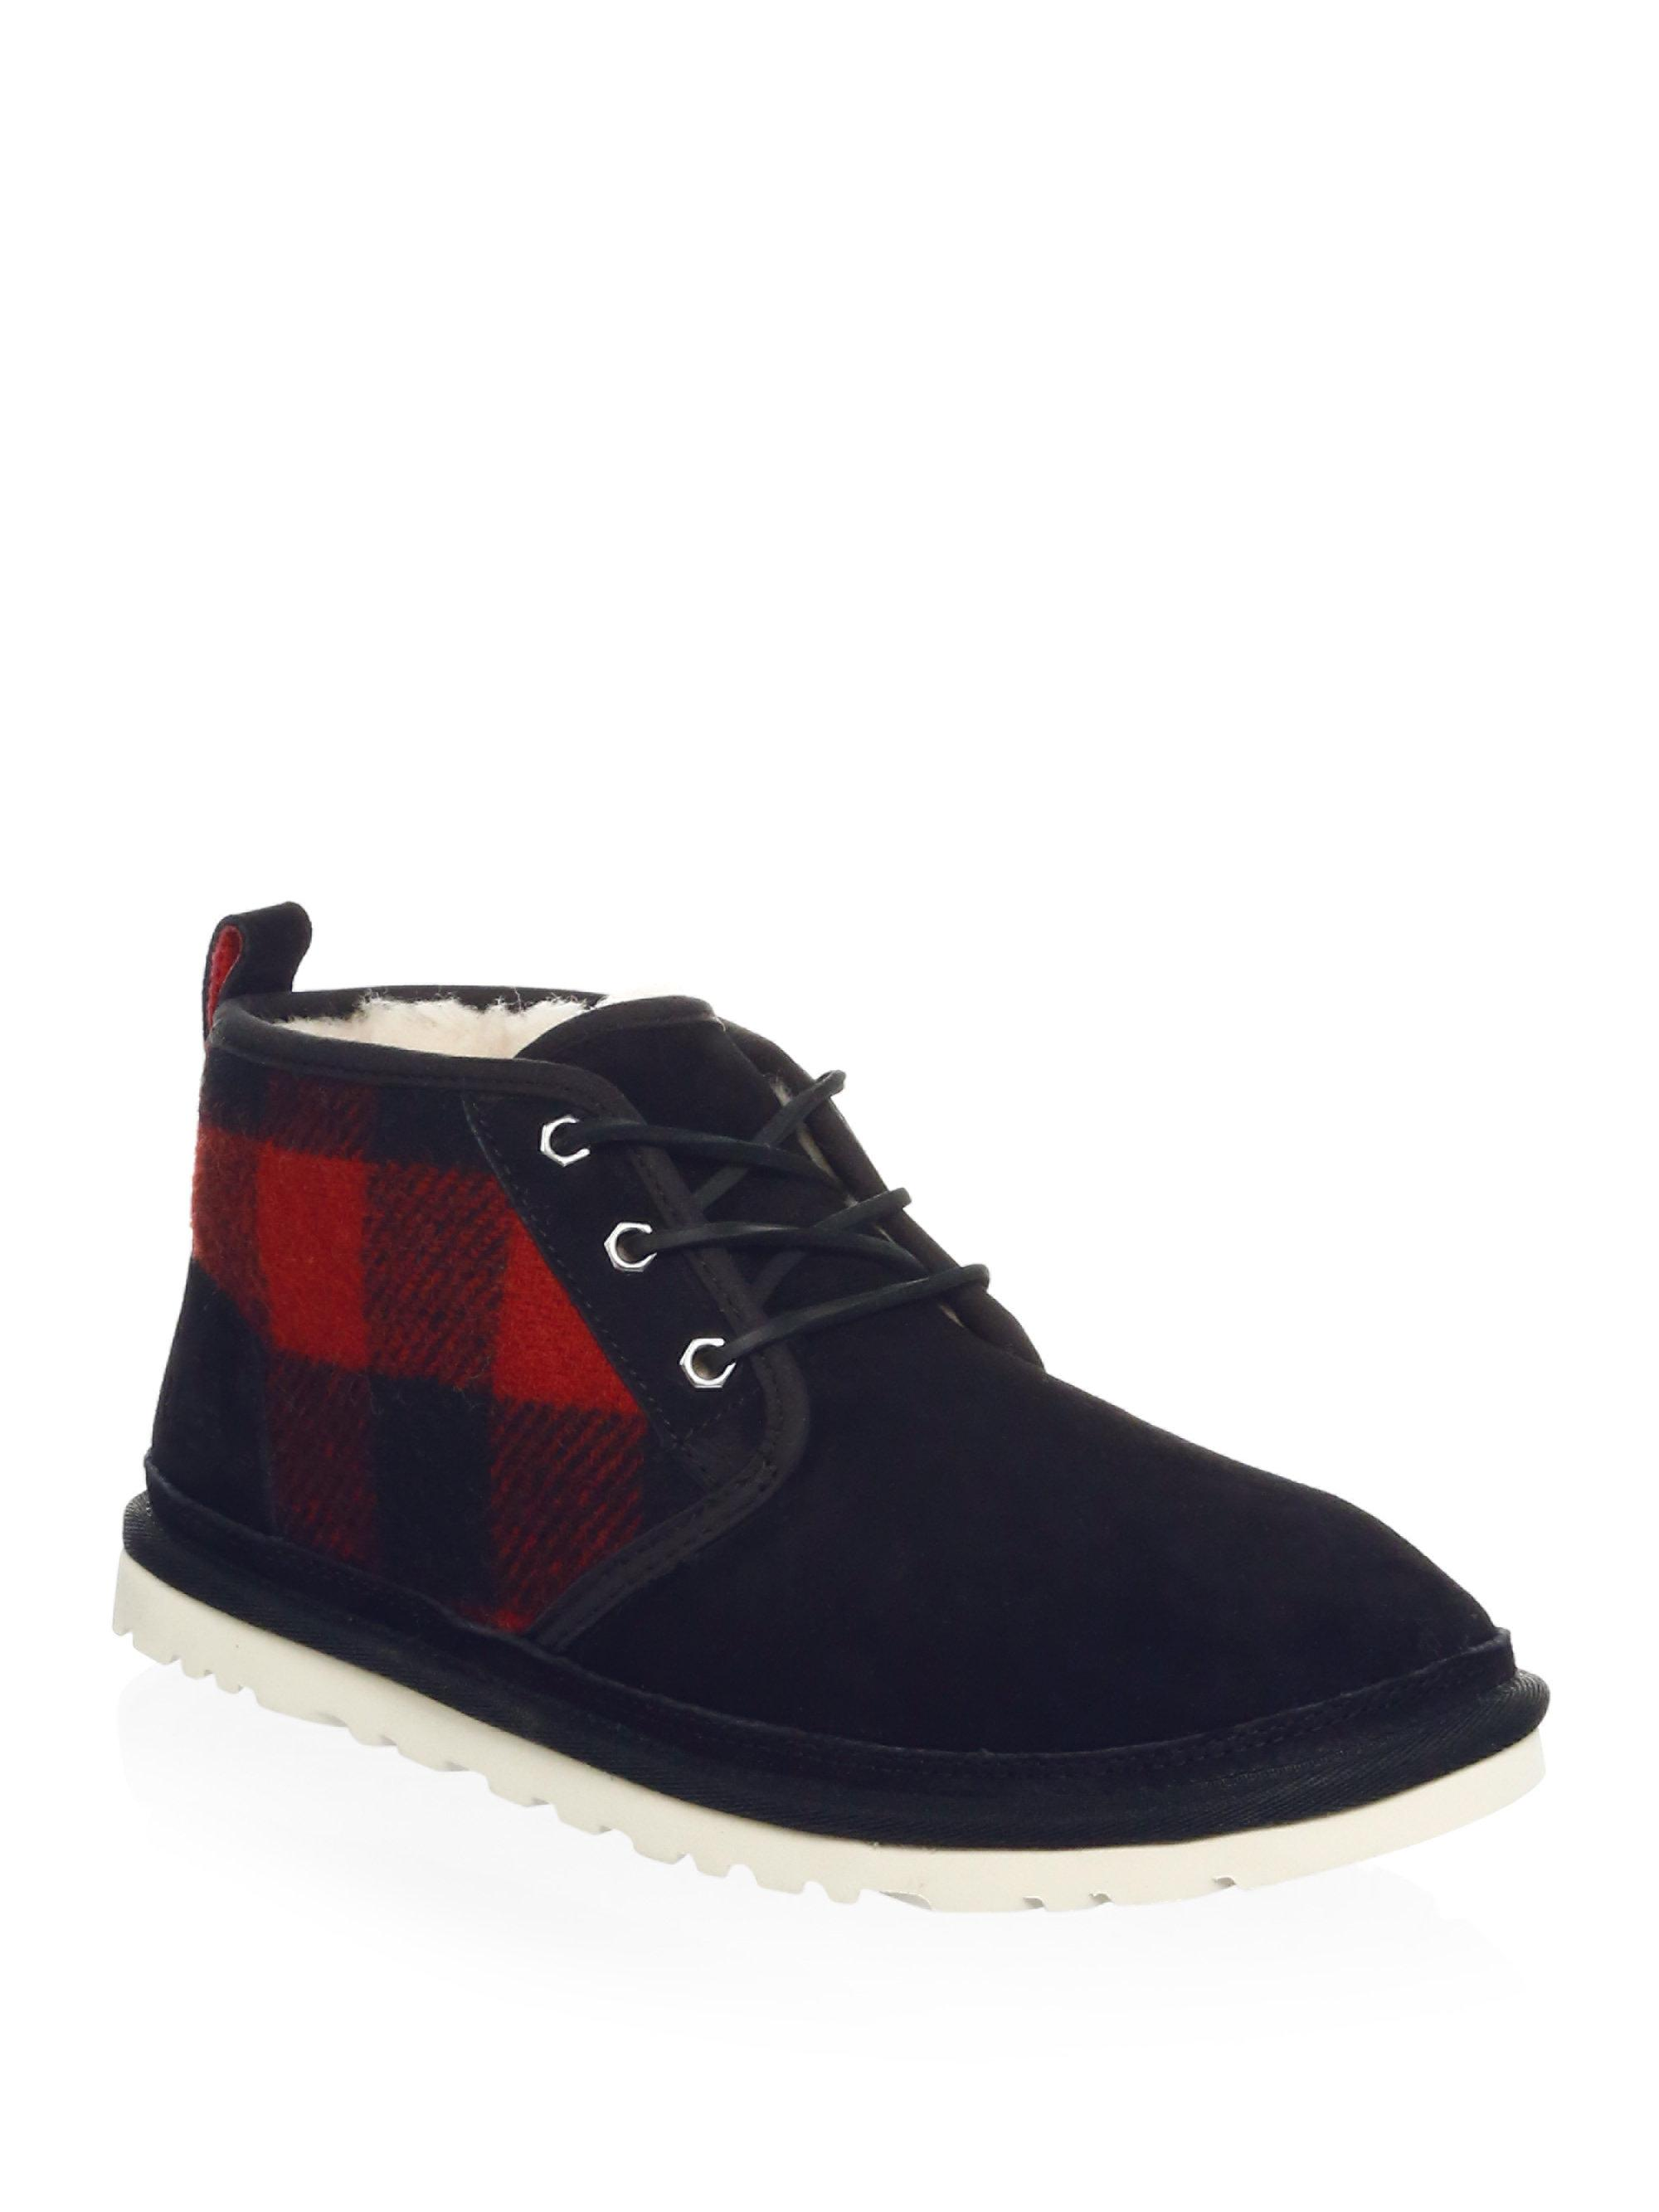 UGG Neumel Plaid Ankle Boots